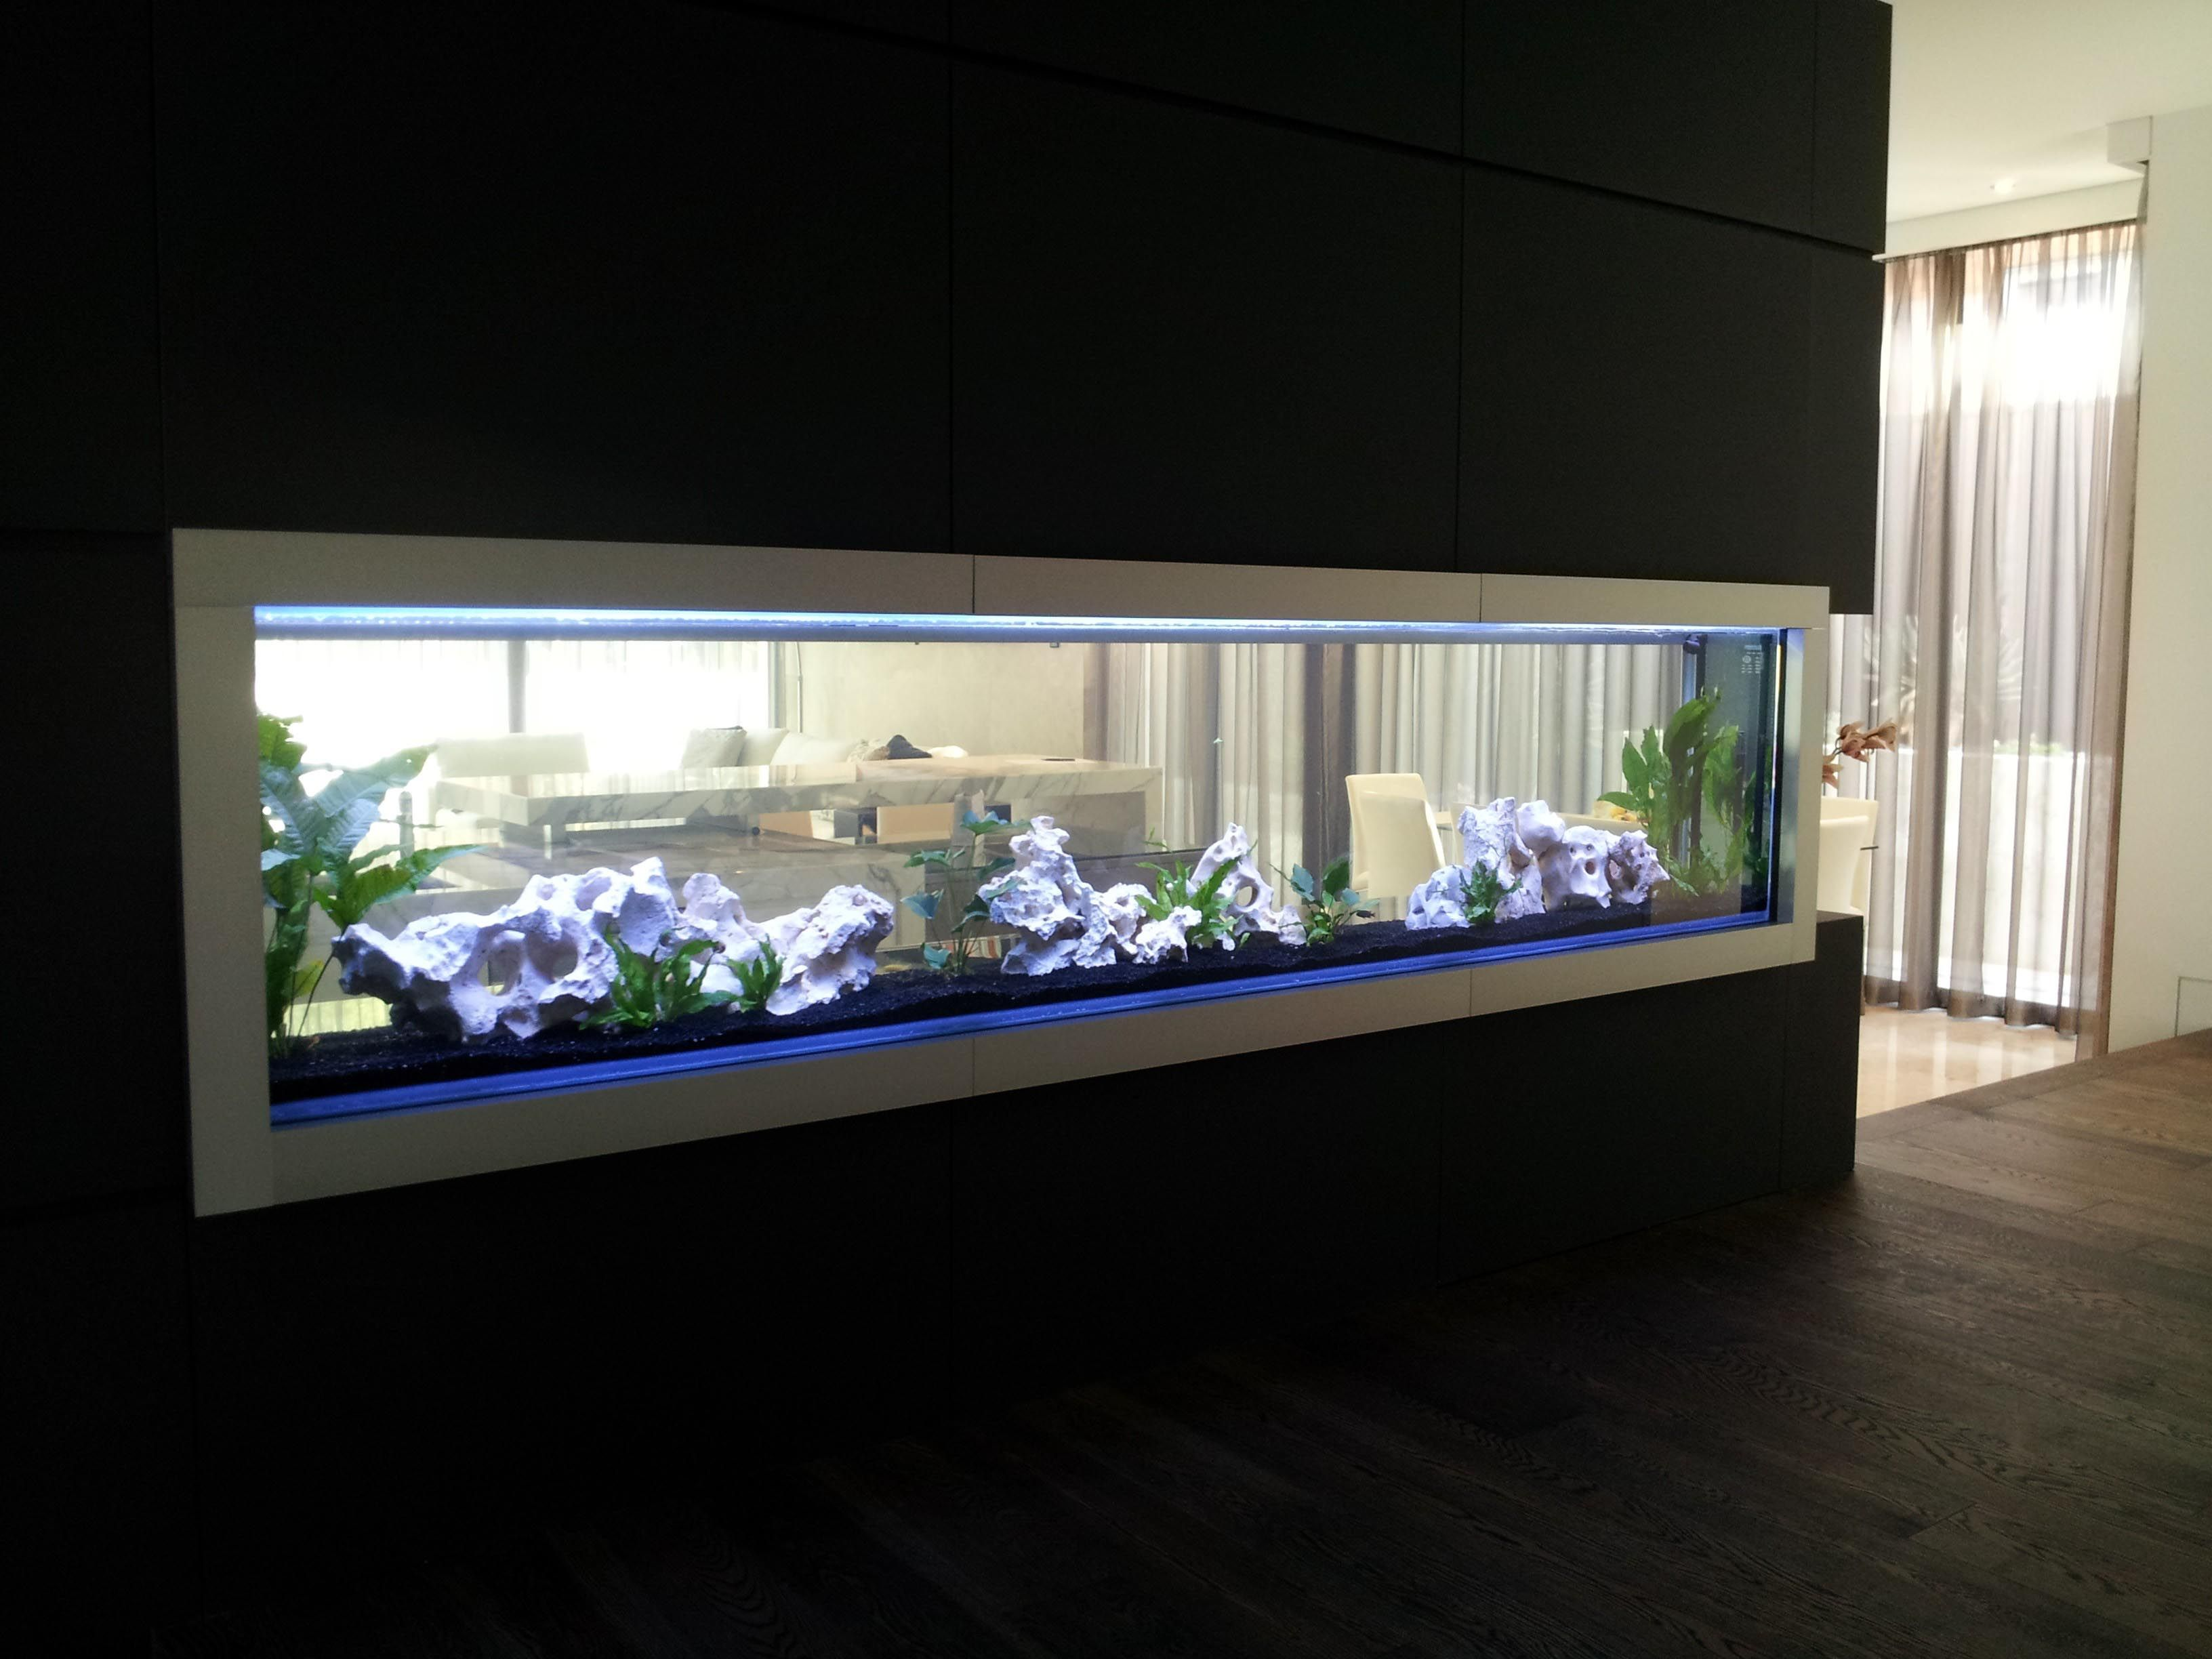 Best glass aquarium manufacturers aquarium ideas for Floor fish tank